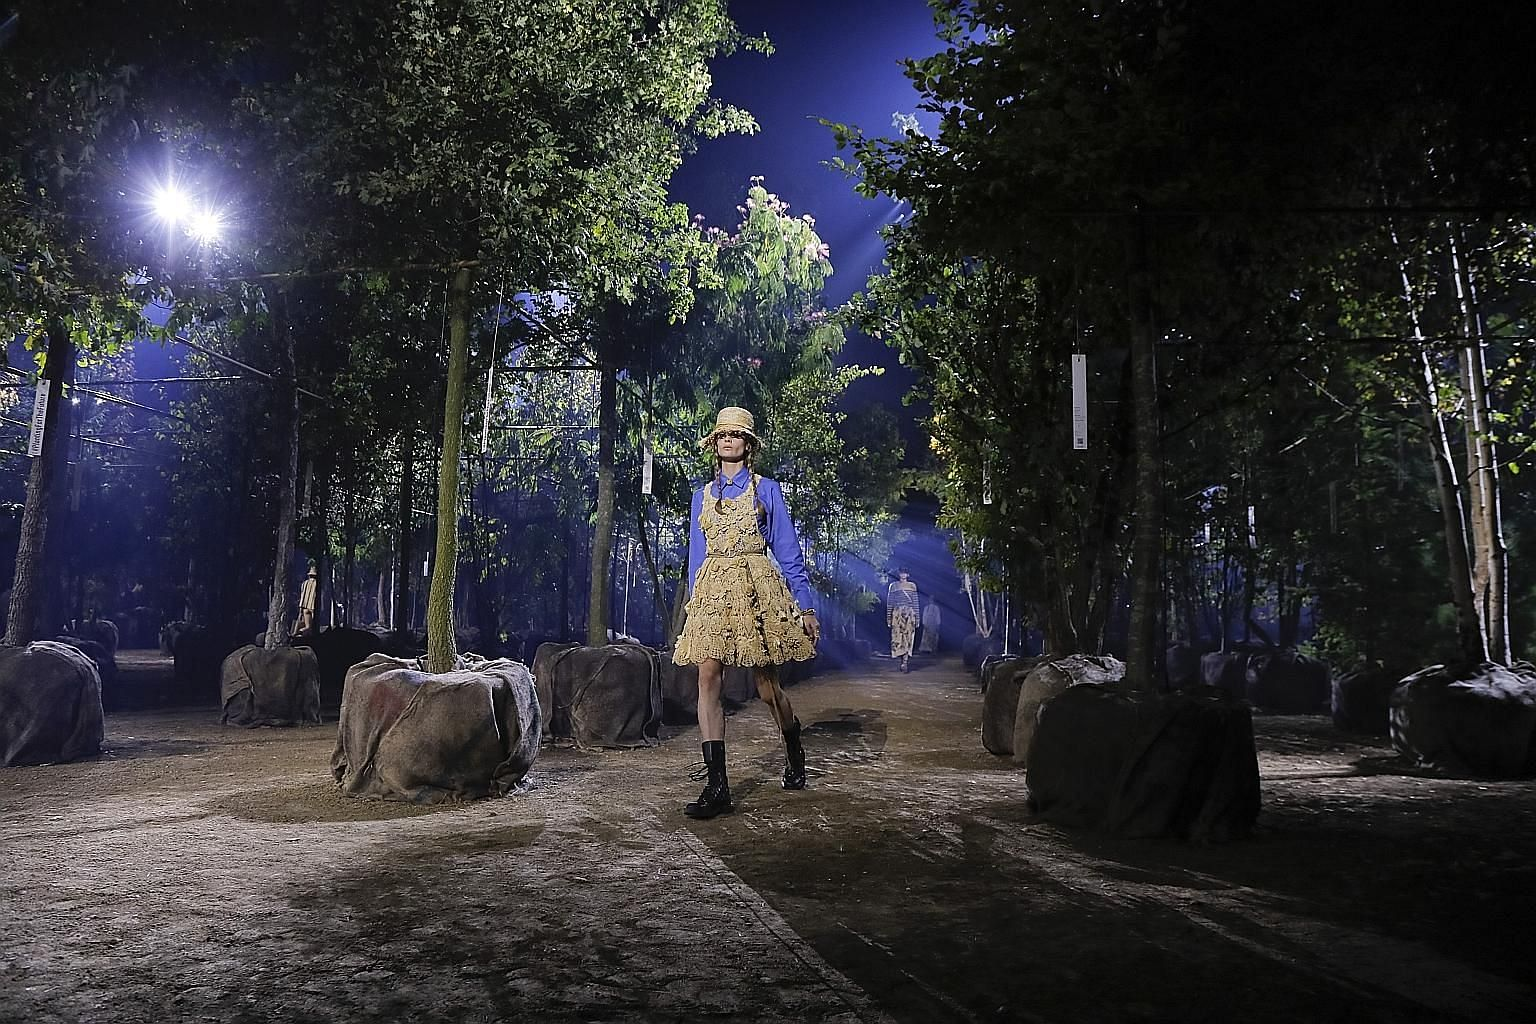 The Dior spring 2020 collection show in Paris on Sept 24 (above). The set was composed of more than 100 trees, all of which were bound for community gardens afterwards.